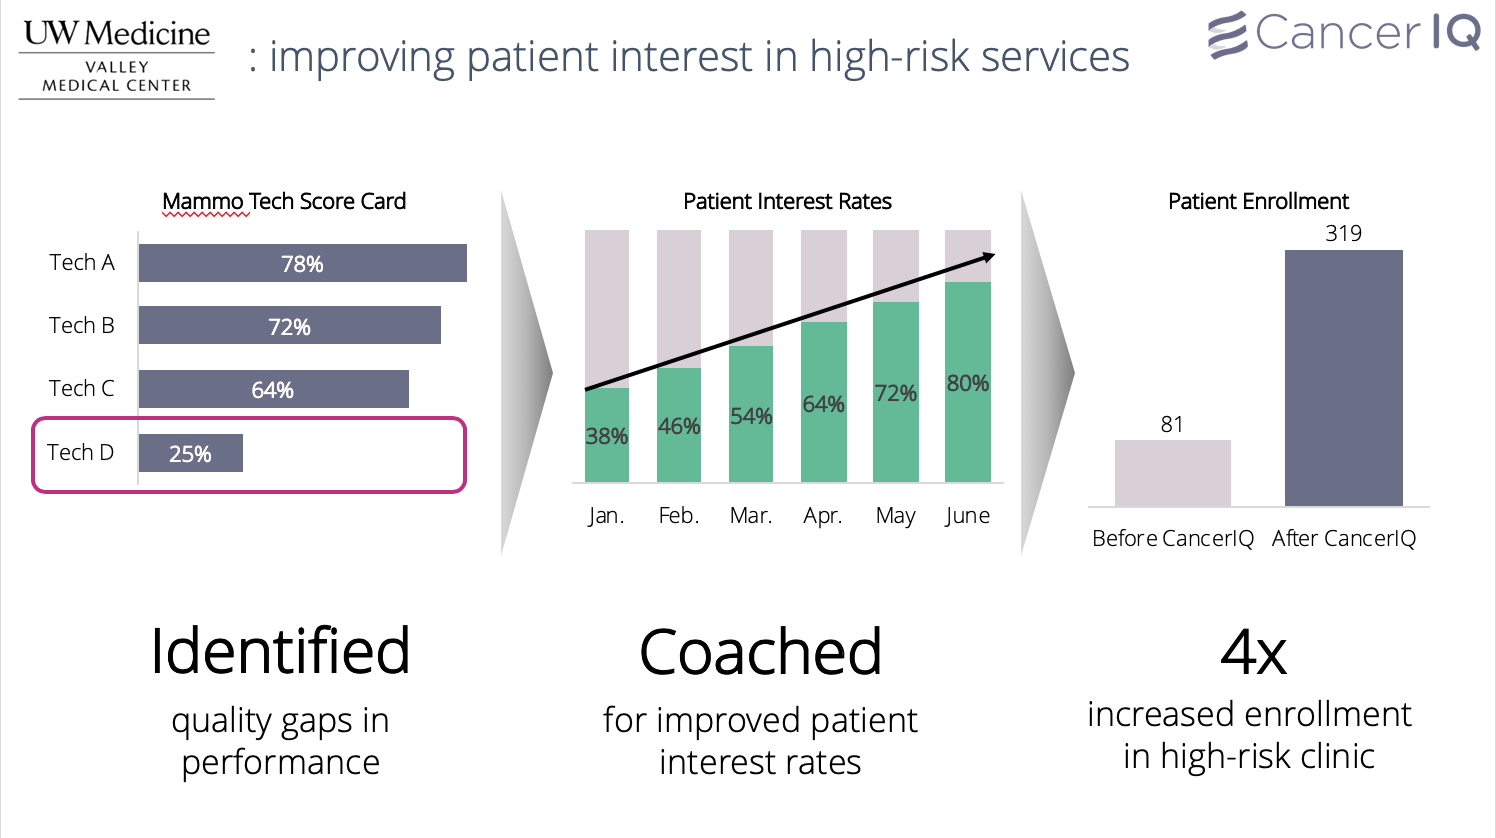 Improving patient interest in high-risk services